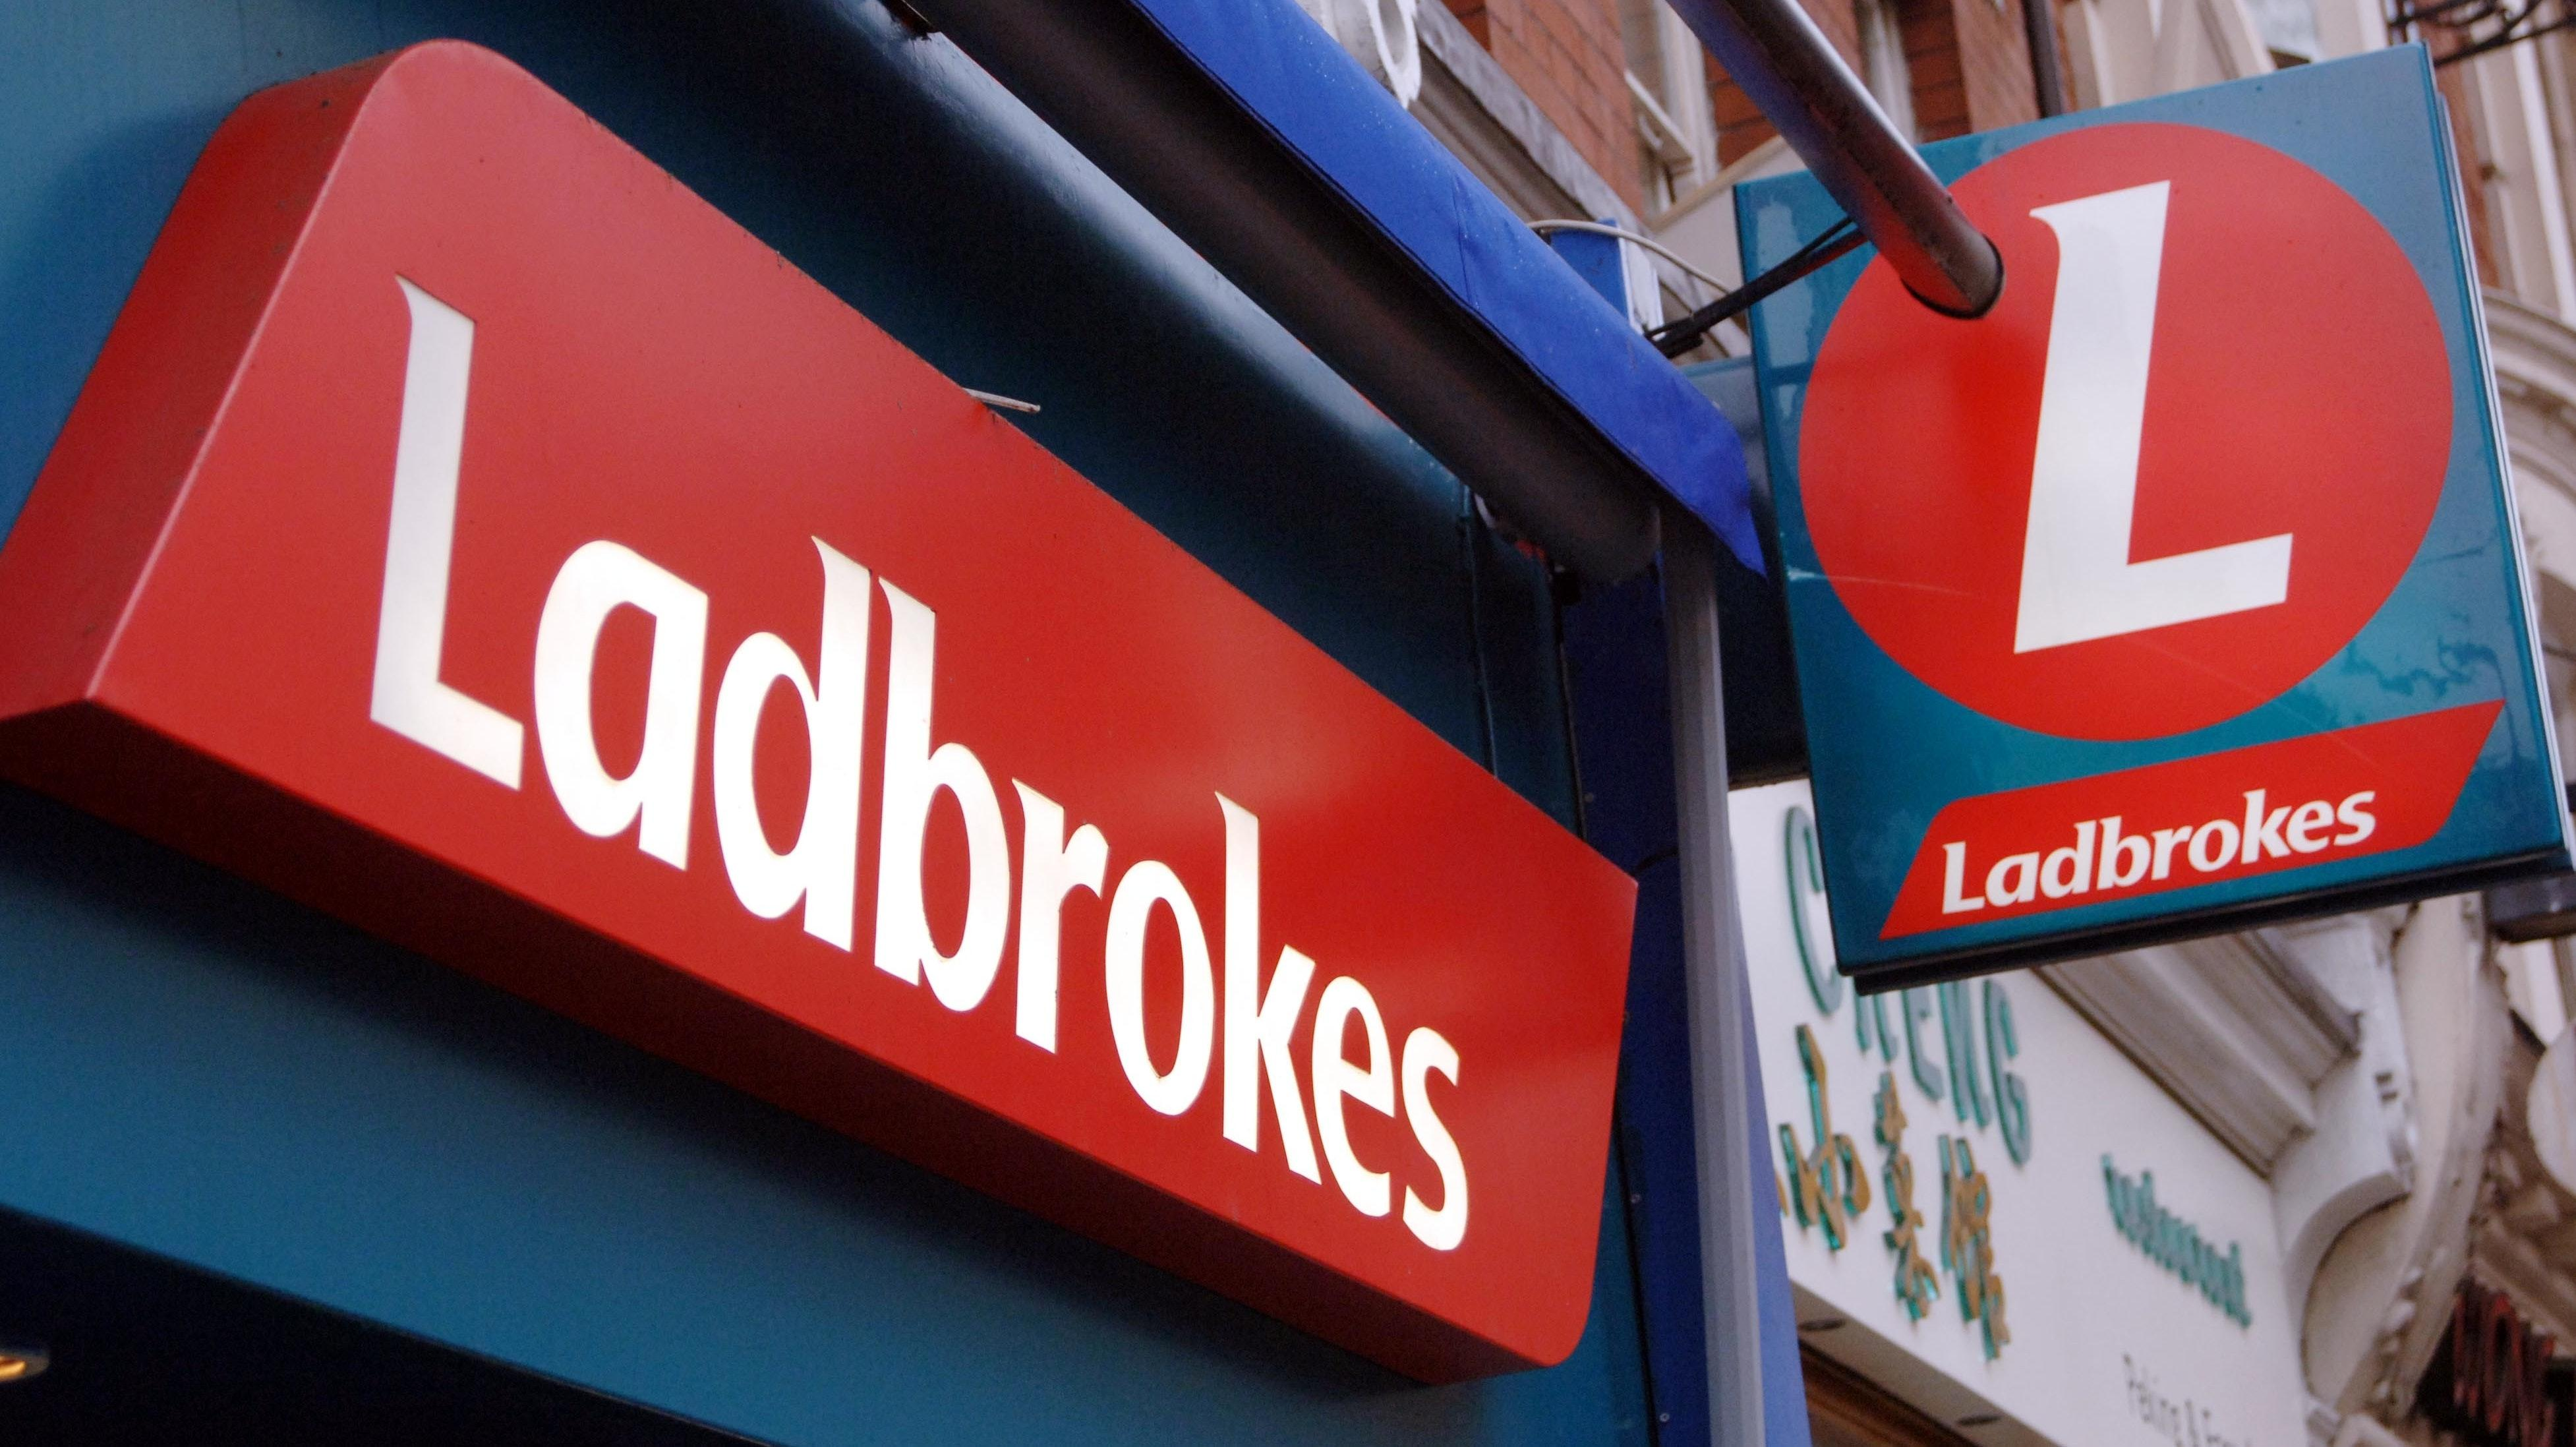 Ladbrokes betting rules of 21 betting lines on nfl games today